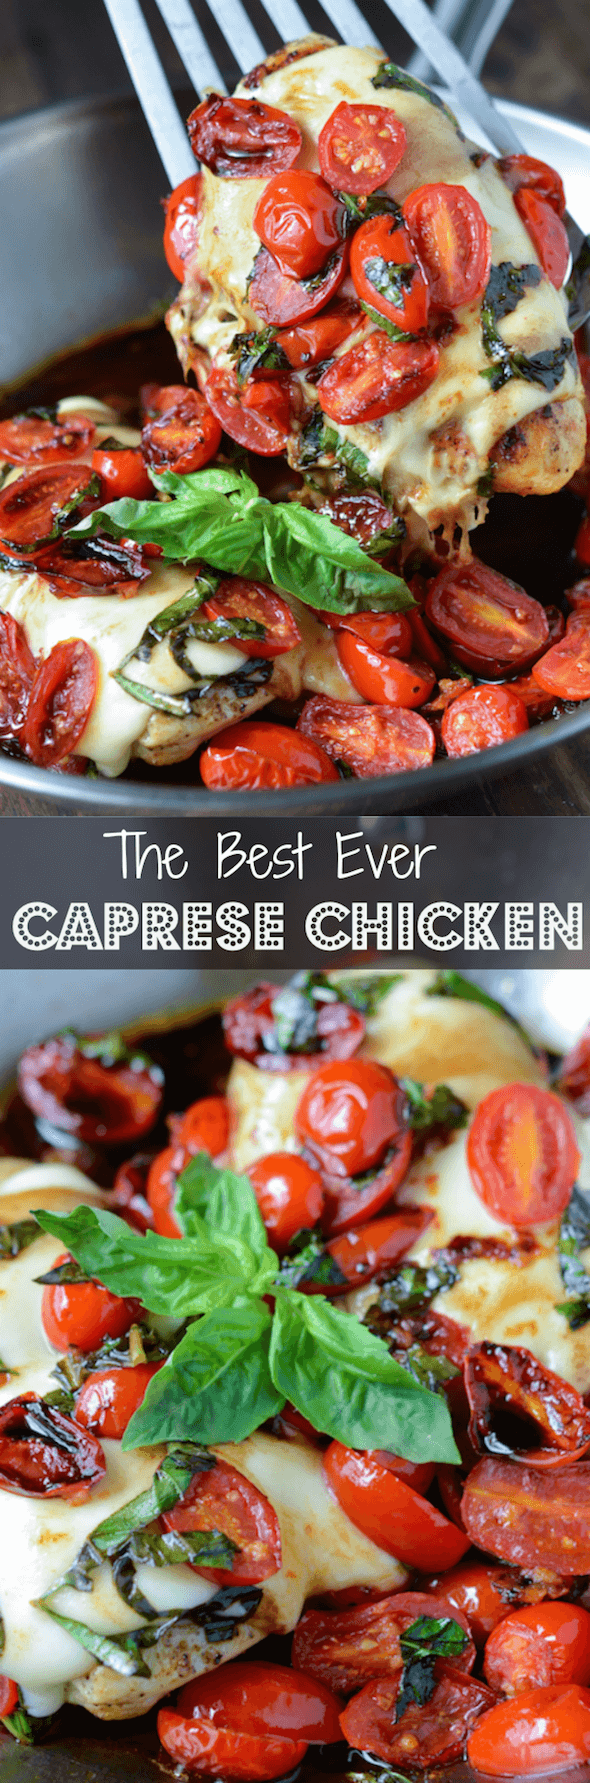 Caprese Chicken: chicken breasts are topped with garlic cherry tomatoes, mozzarella, basil and balsamic vinegar to create this one pan, 30 minute, low carb dinner.